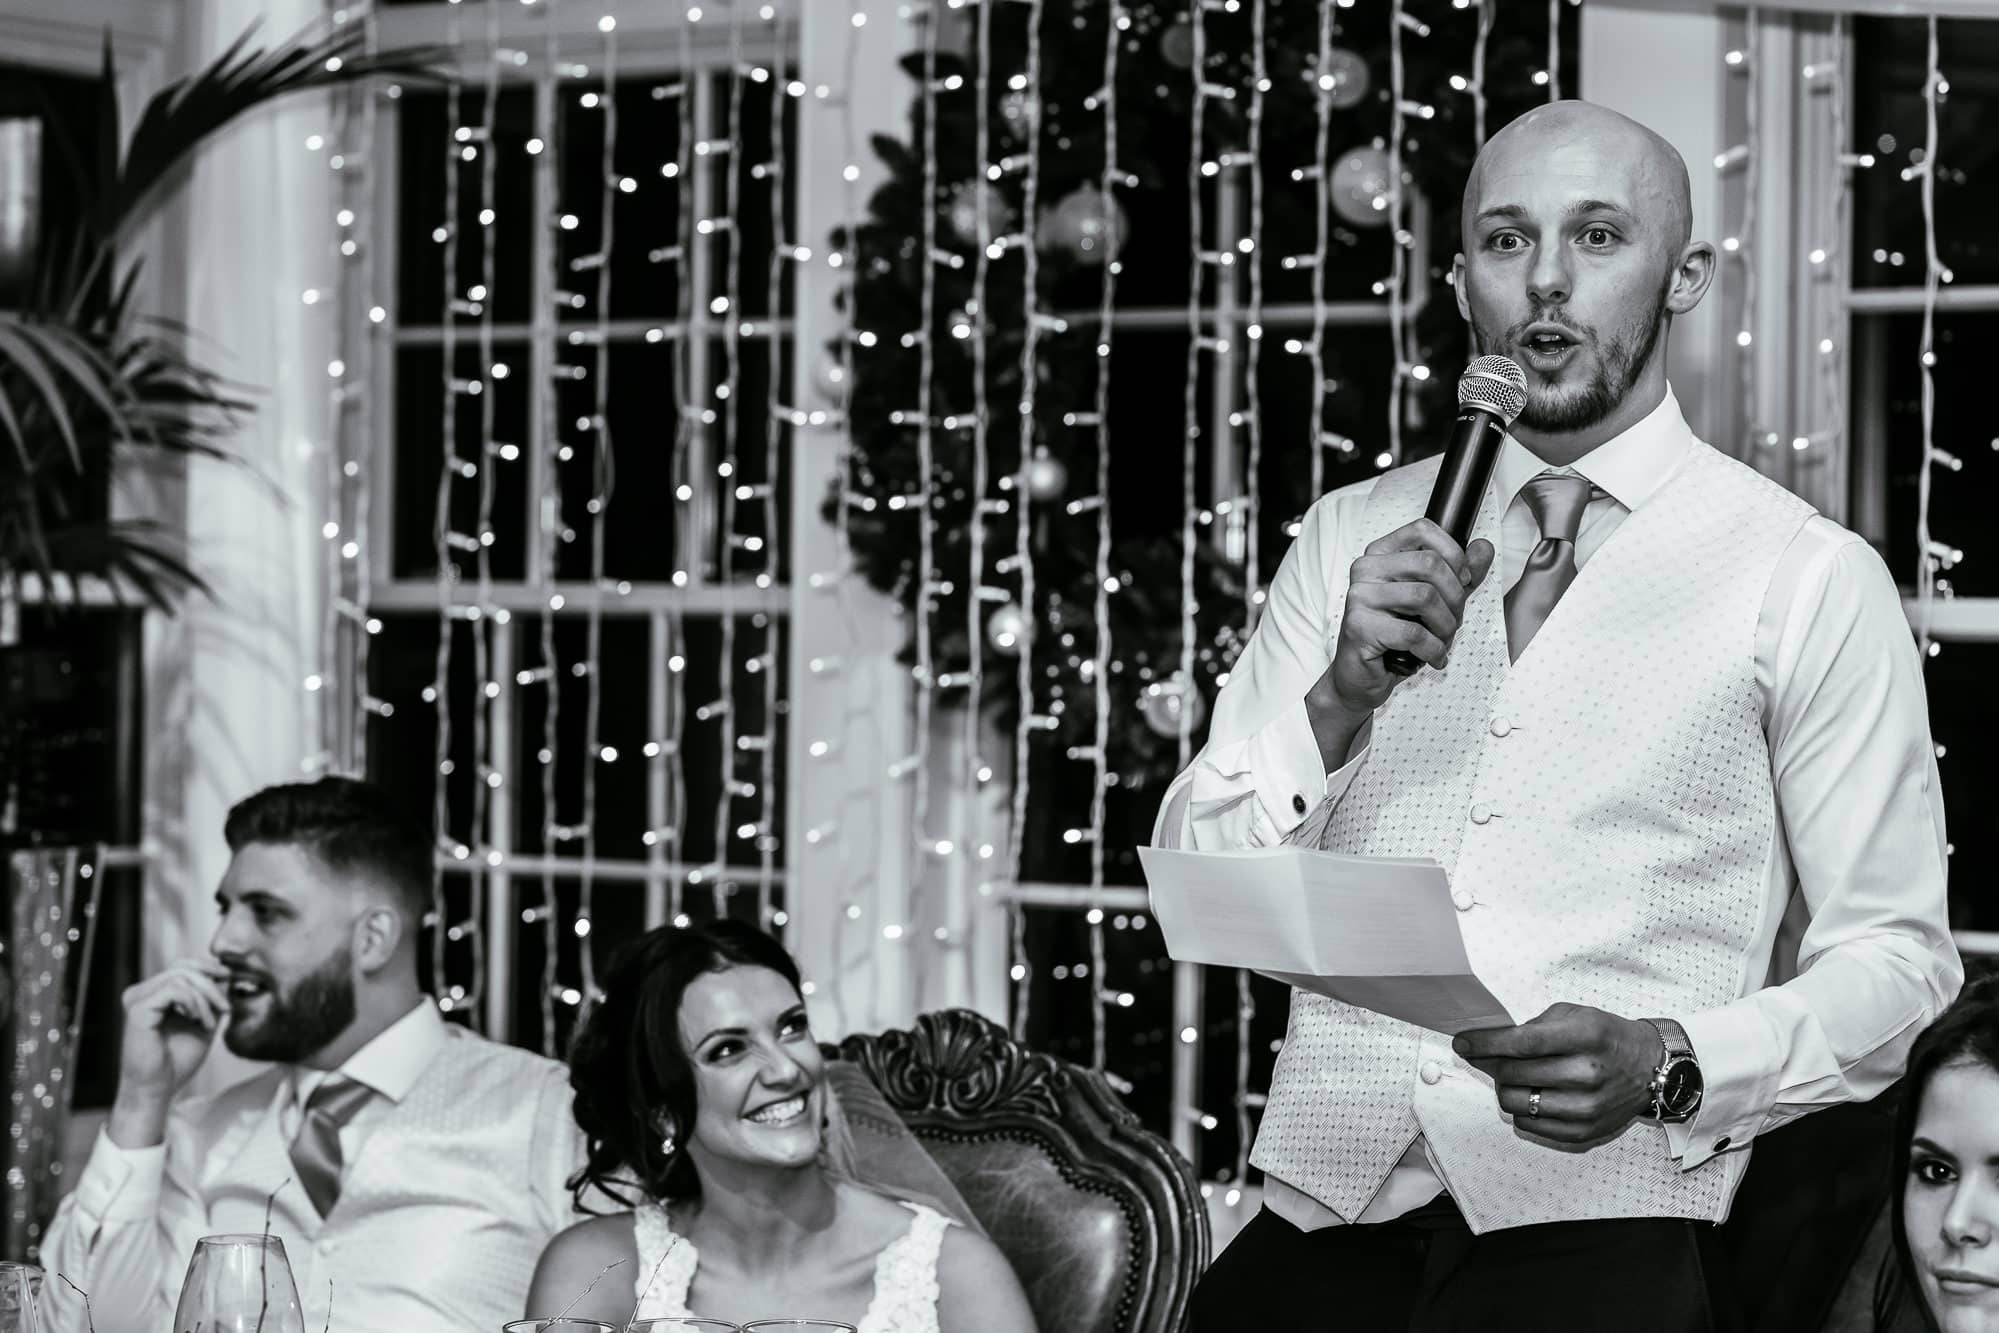 Groom speech and bride laughing